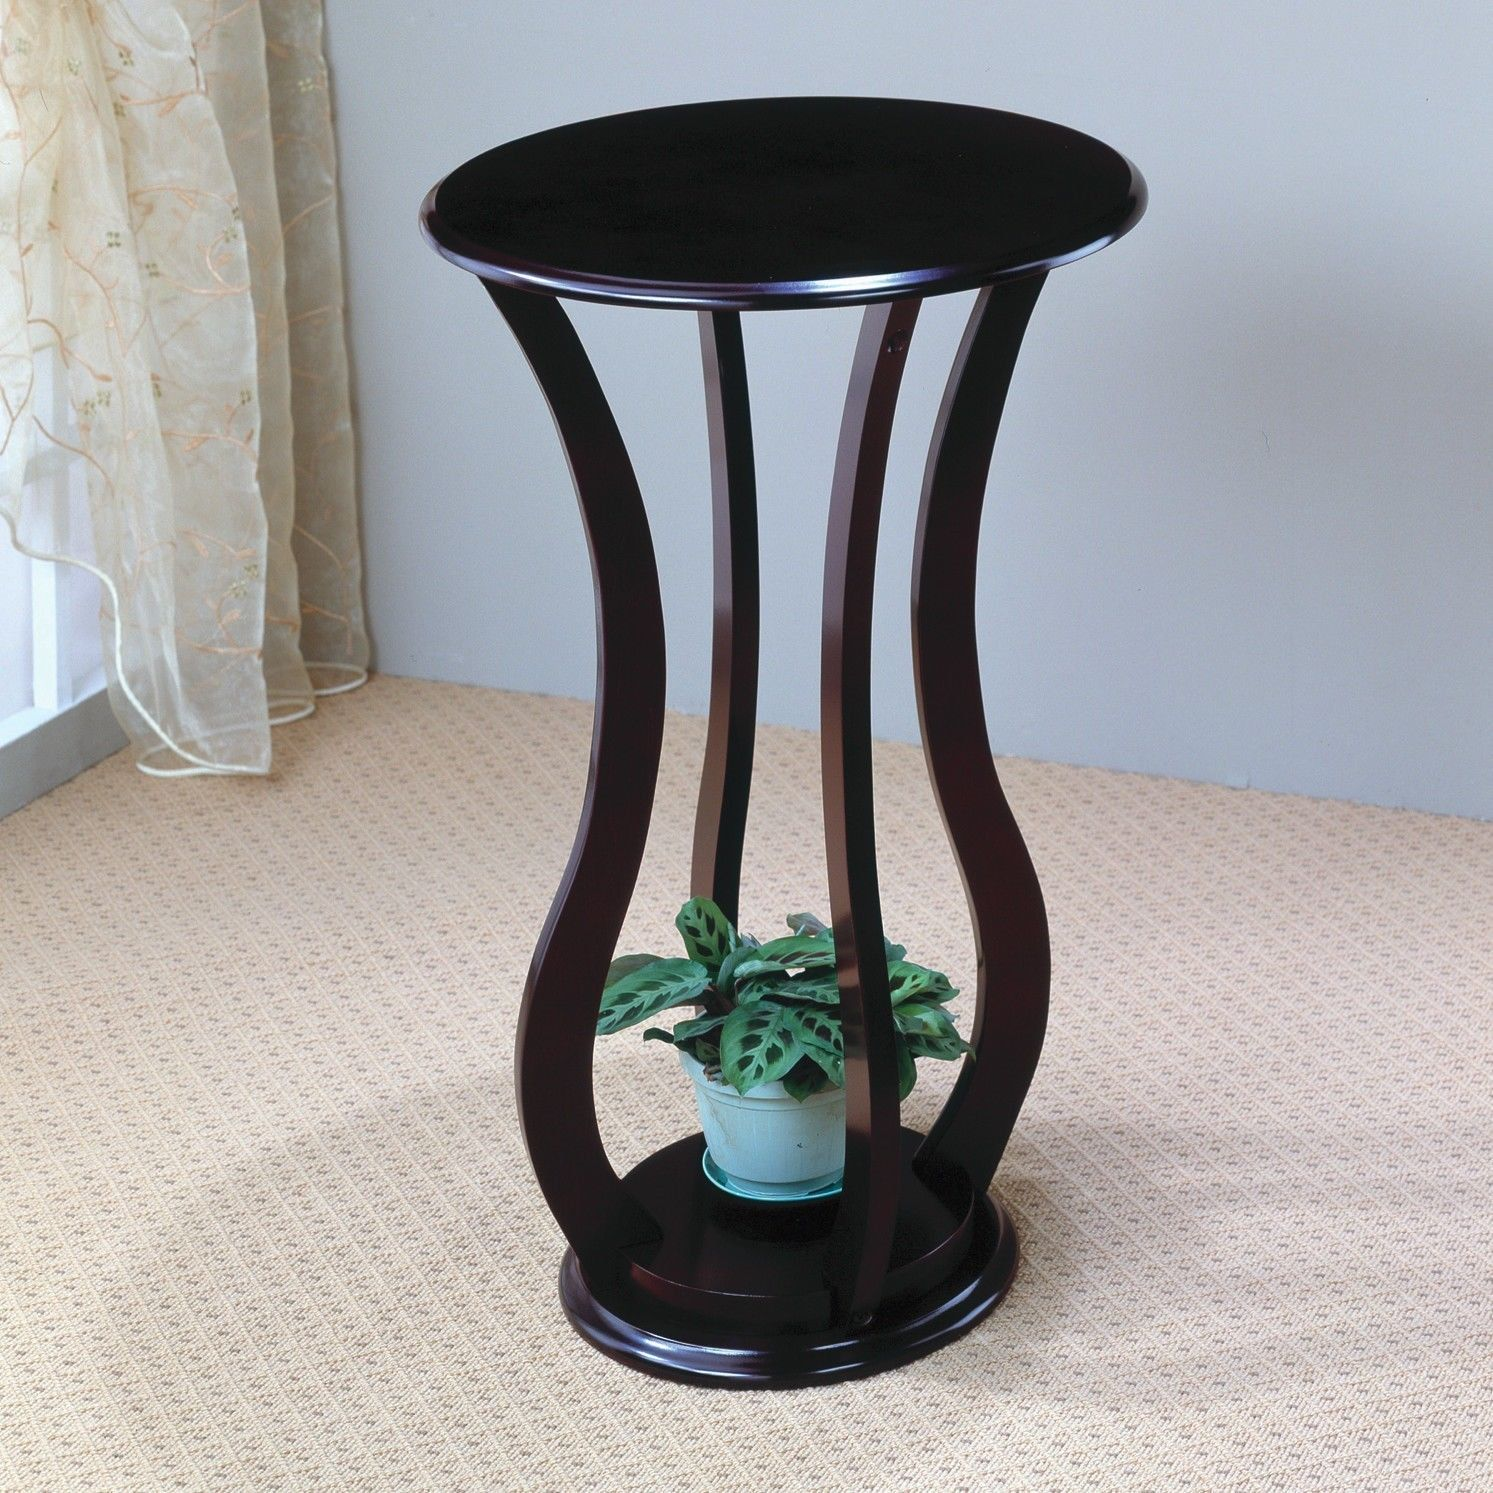 indoor plant stand wood round pedestal accent table modern display furniture new waterproof phone pouch target inexpensive legs west elm small poolside tables outdoor wicker patio